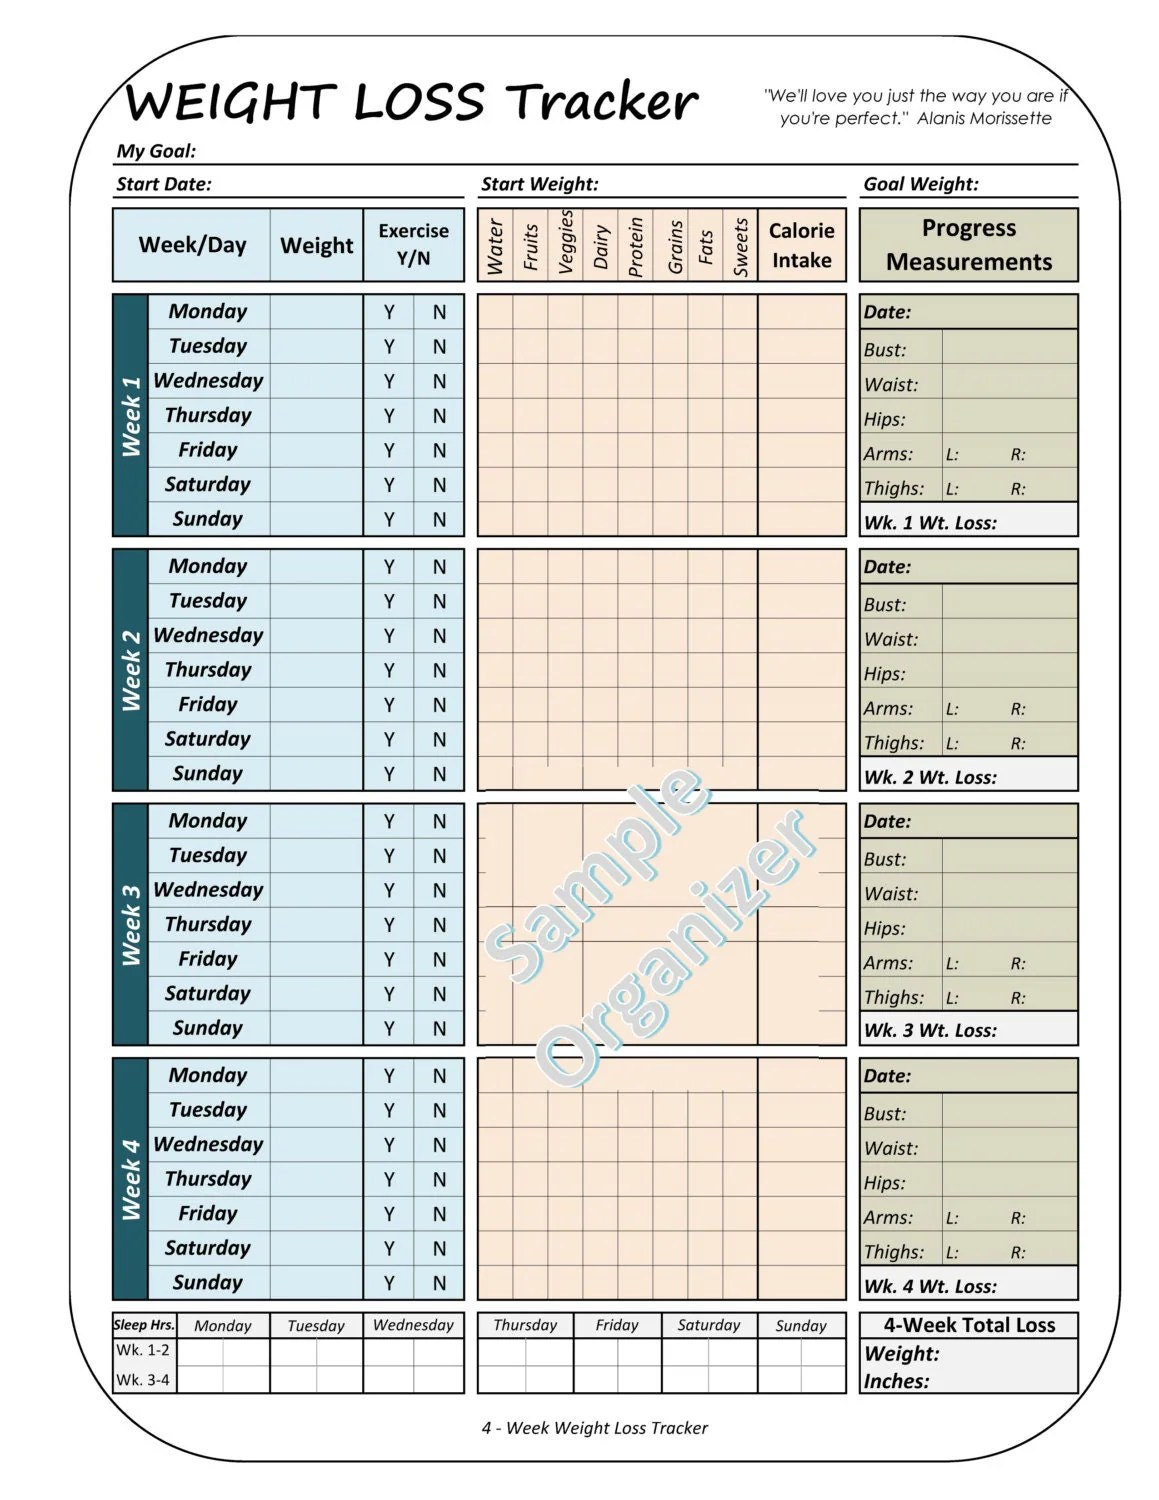 Weight Loss Tracker Printable Weight Loss Planner 4 Week